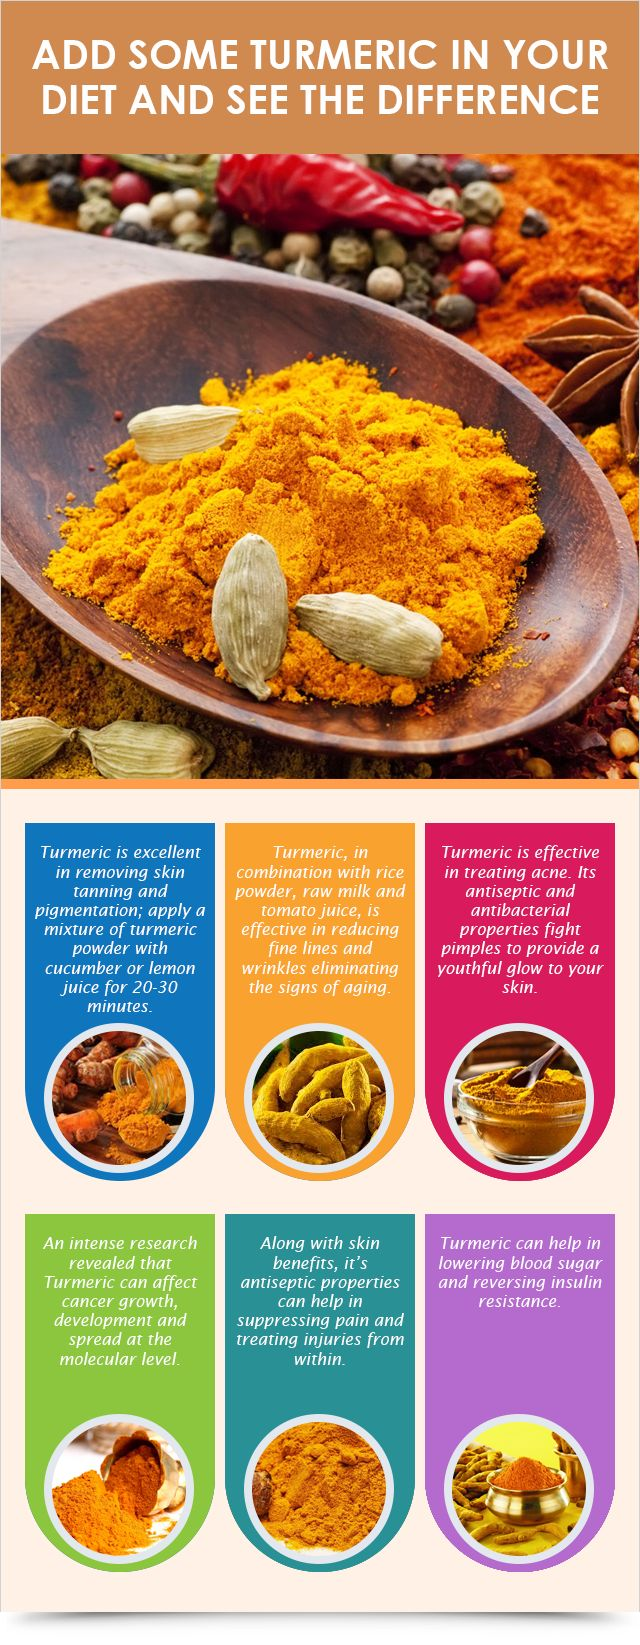 Add Some Turmeric In Your Diet : Health Products For You